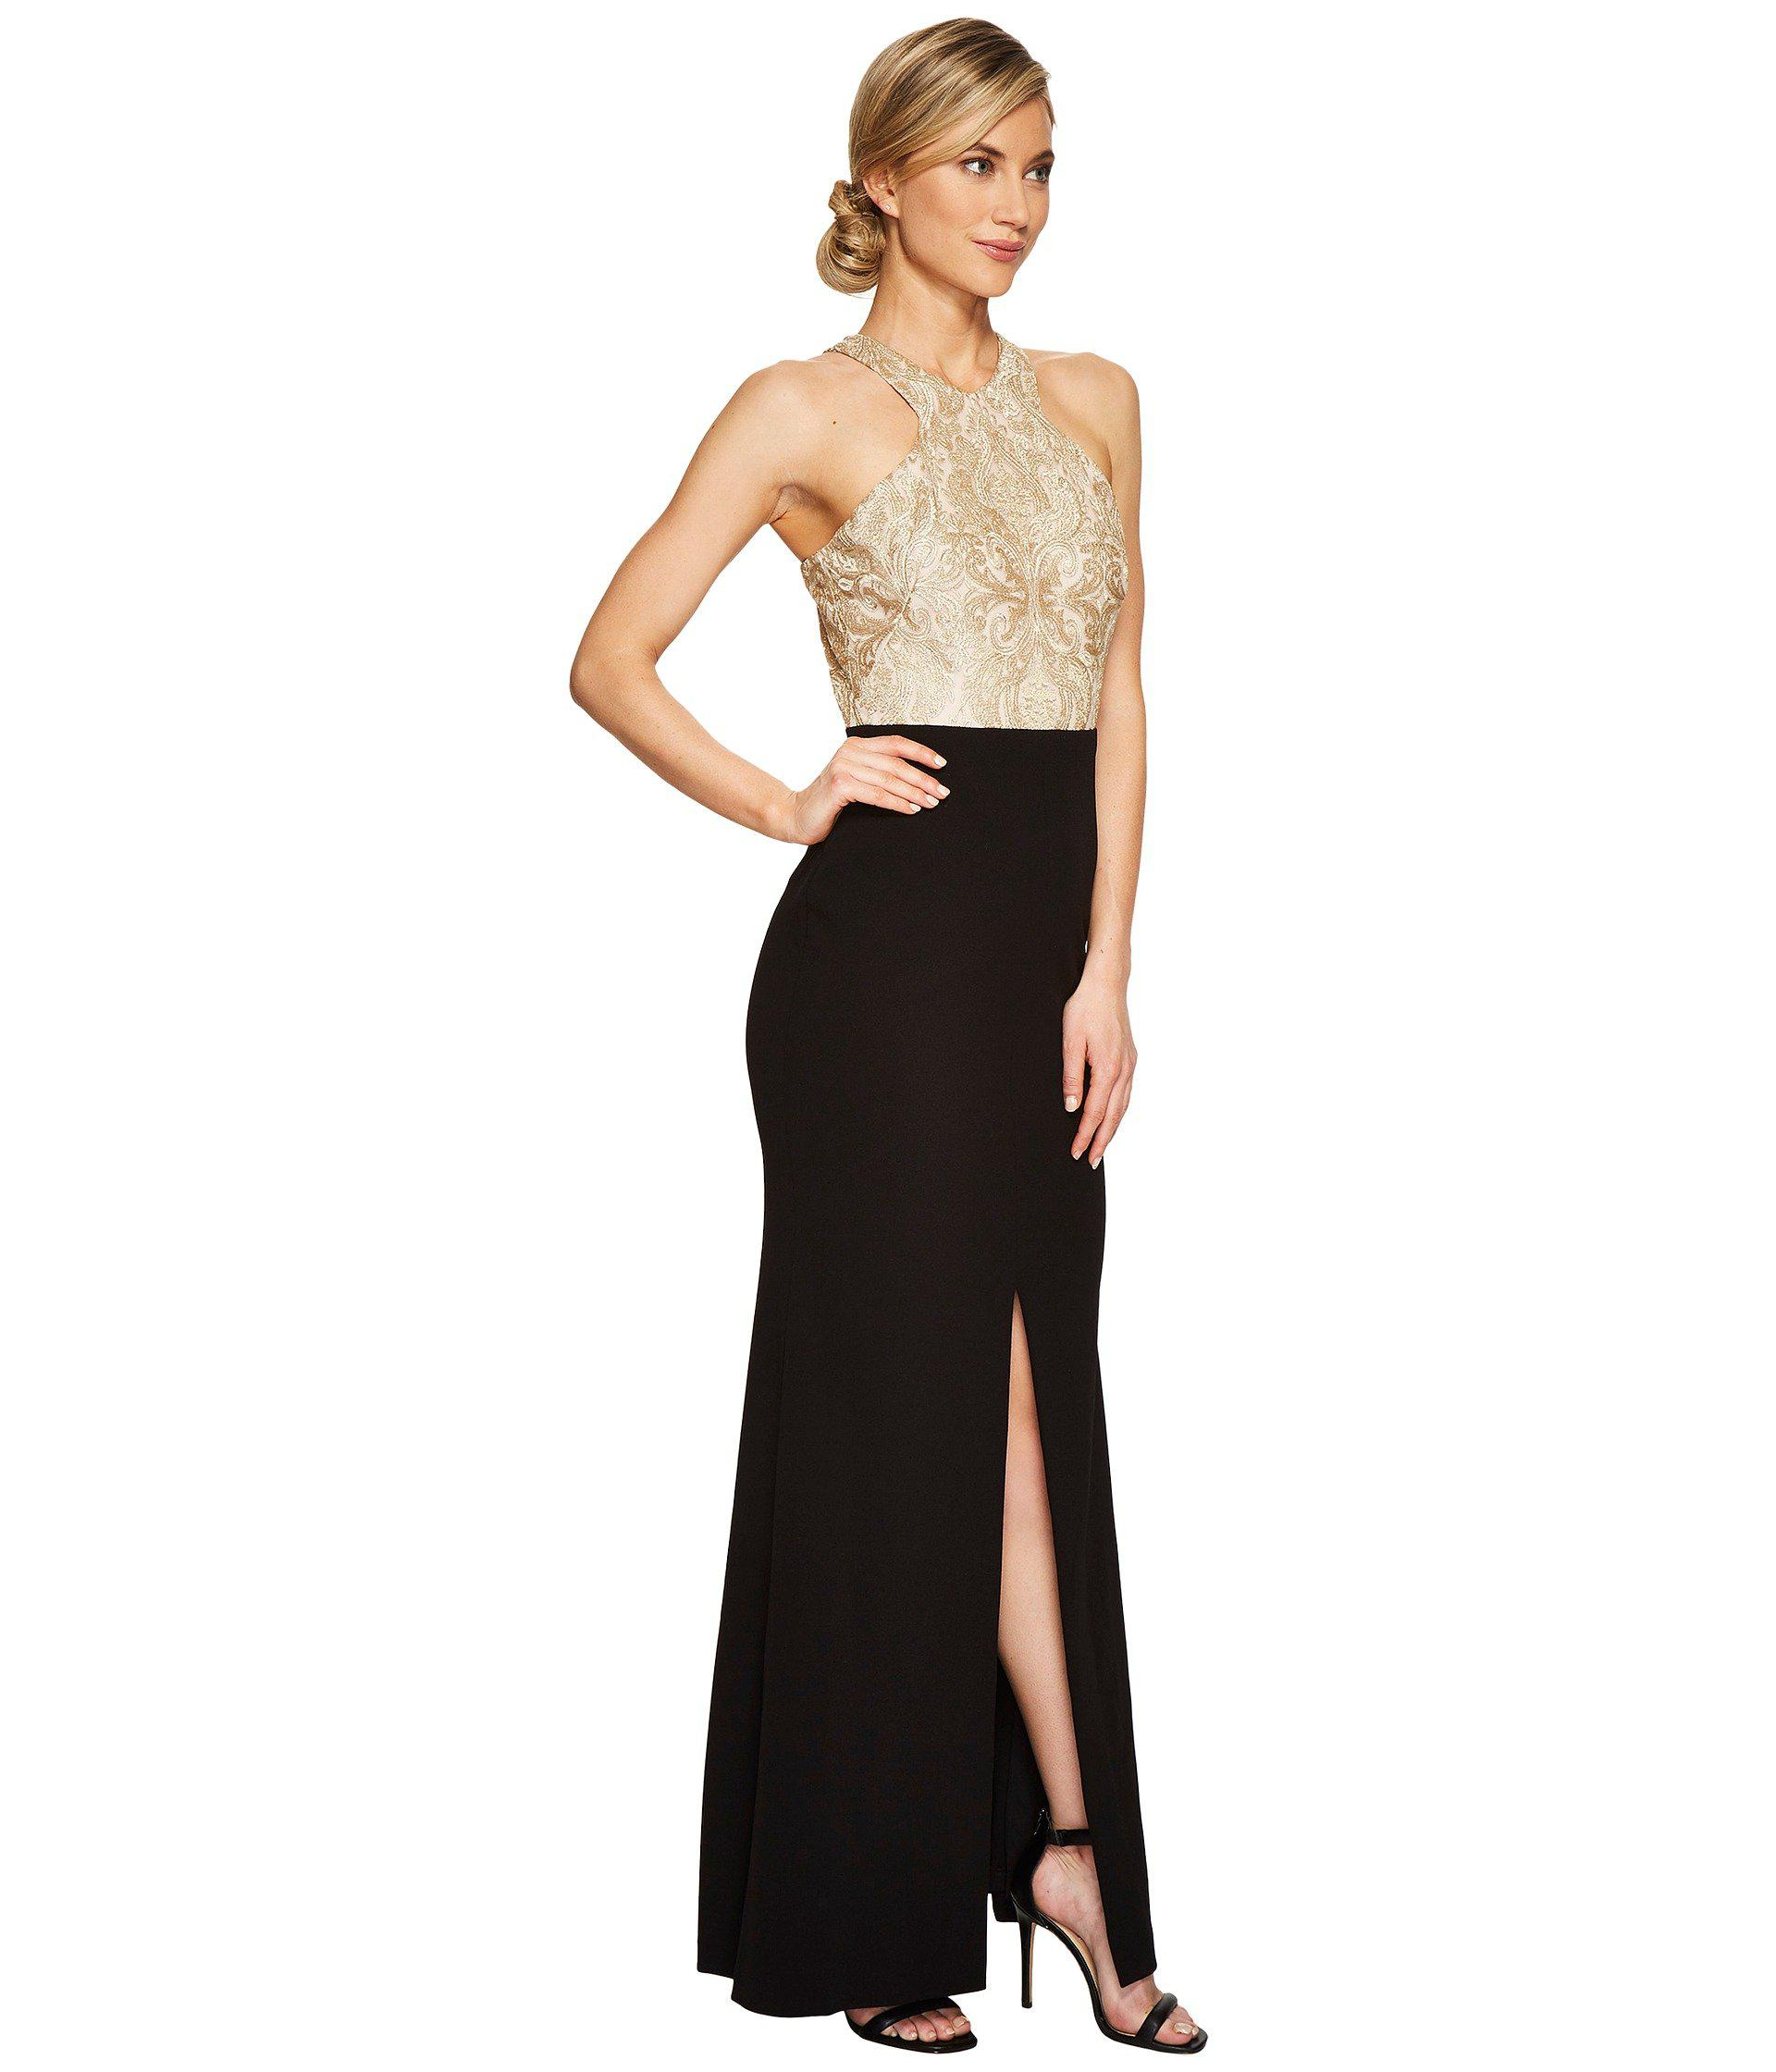 7ebb95a5791 Lyst - Calvin Klein Halter Neck Lace Bodice Gown Cd7b277b in Black